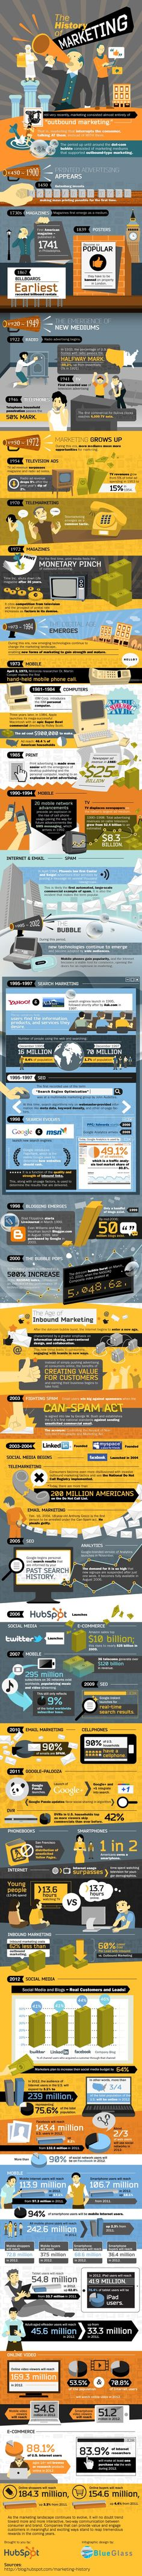 """The History of Marketing: An Exhaustive Timeline [INFOGRAPHIC] See on Scoop.it - ten Hagen on Social Media """" An detailed timeline infographic featuring the history of marketing from 1450 to See. Inbound Marketing, Marketing Trends, Marketing En Internet, Mobile Marketing, Business Marketing, Content Marketing, Marketing And Advertising, Online Marketing, Social Media Marketing"""